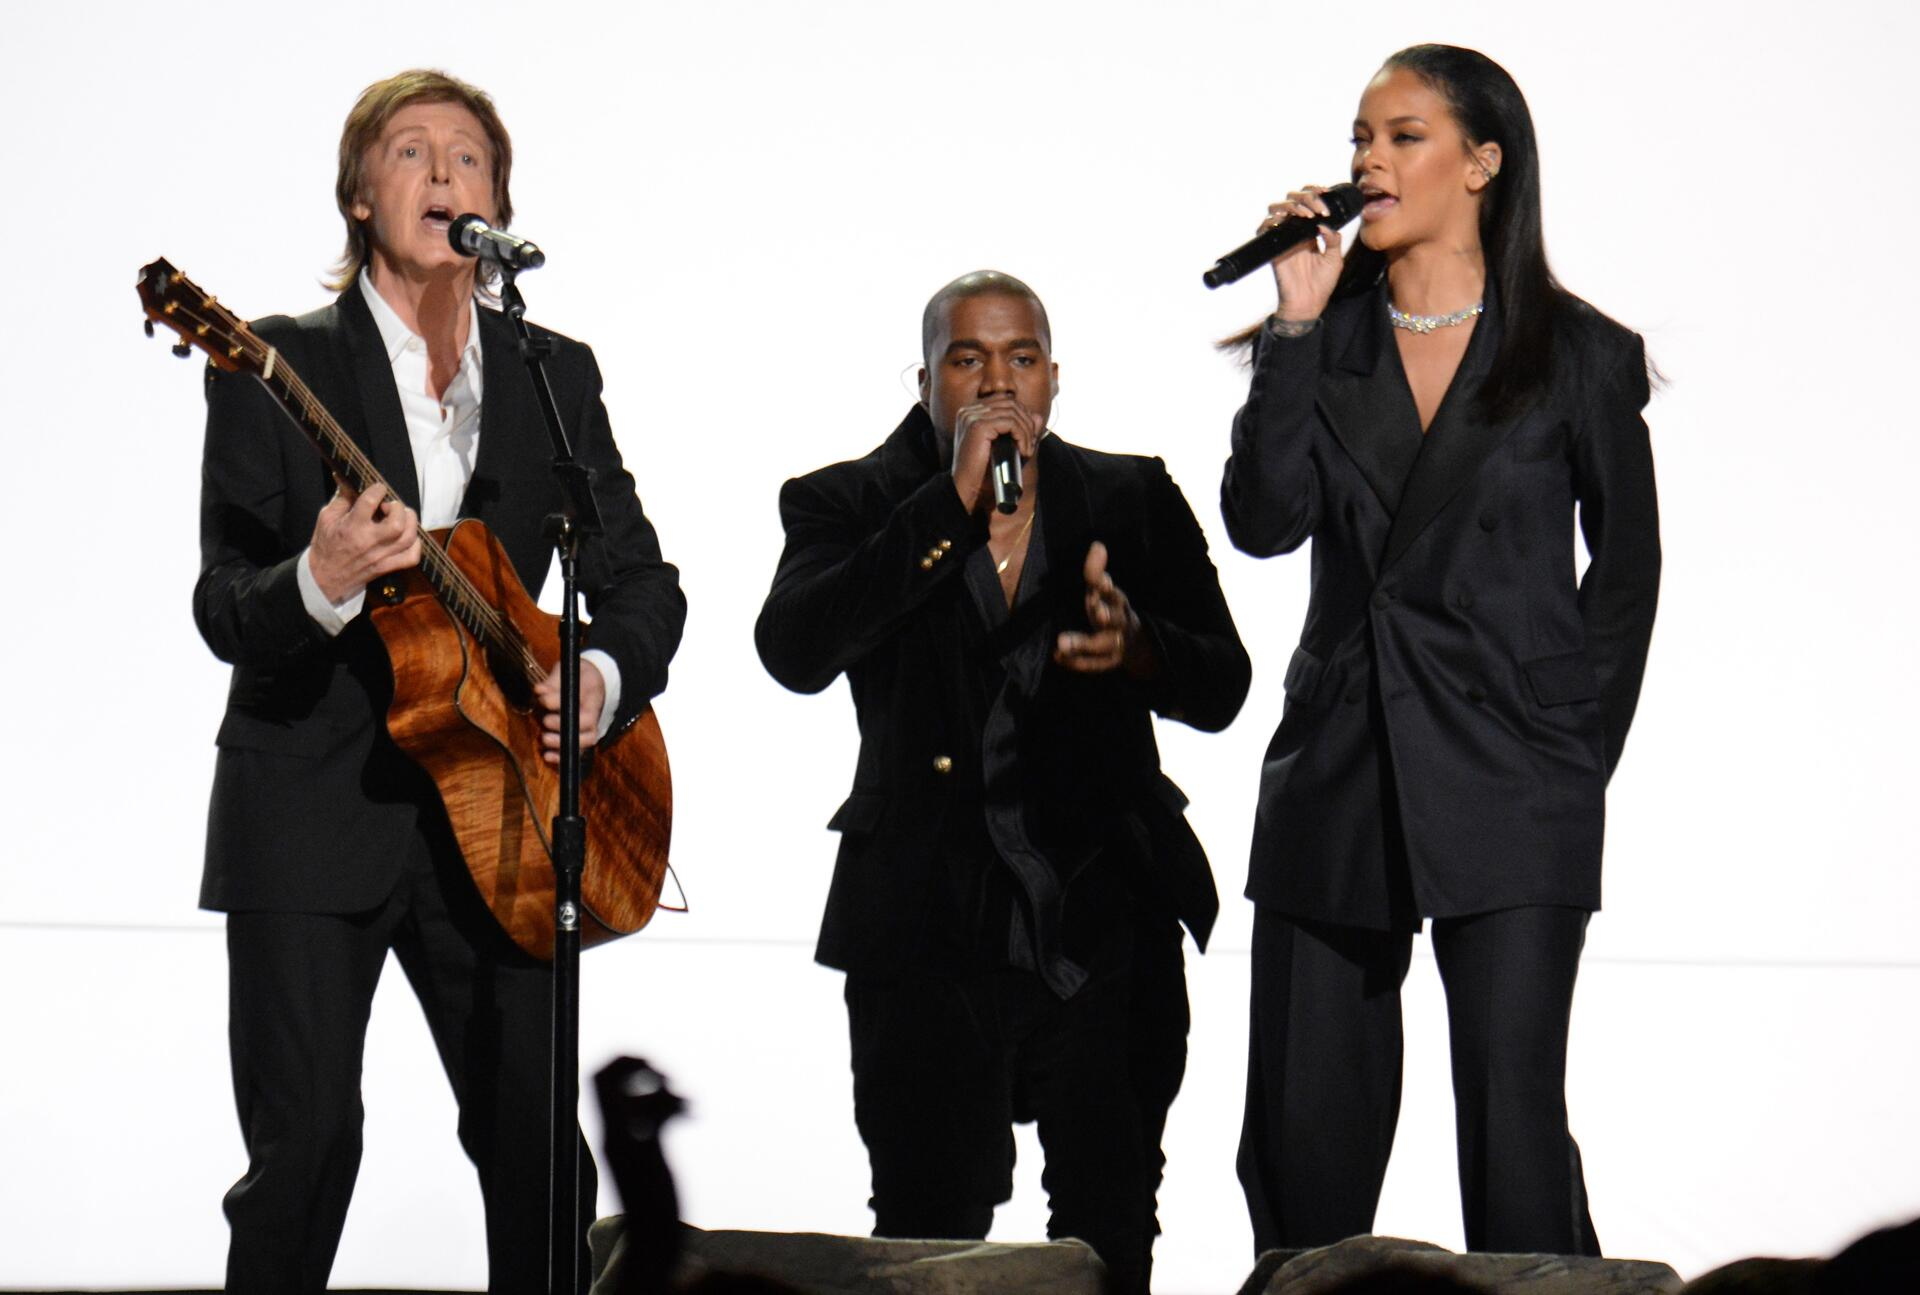 Bild zu Paul McCartney, Kanye West, Rihanna, Grammy Awards